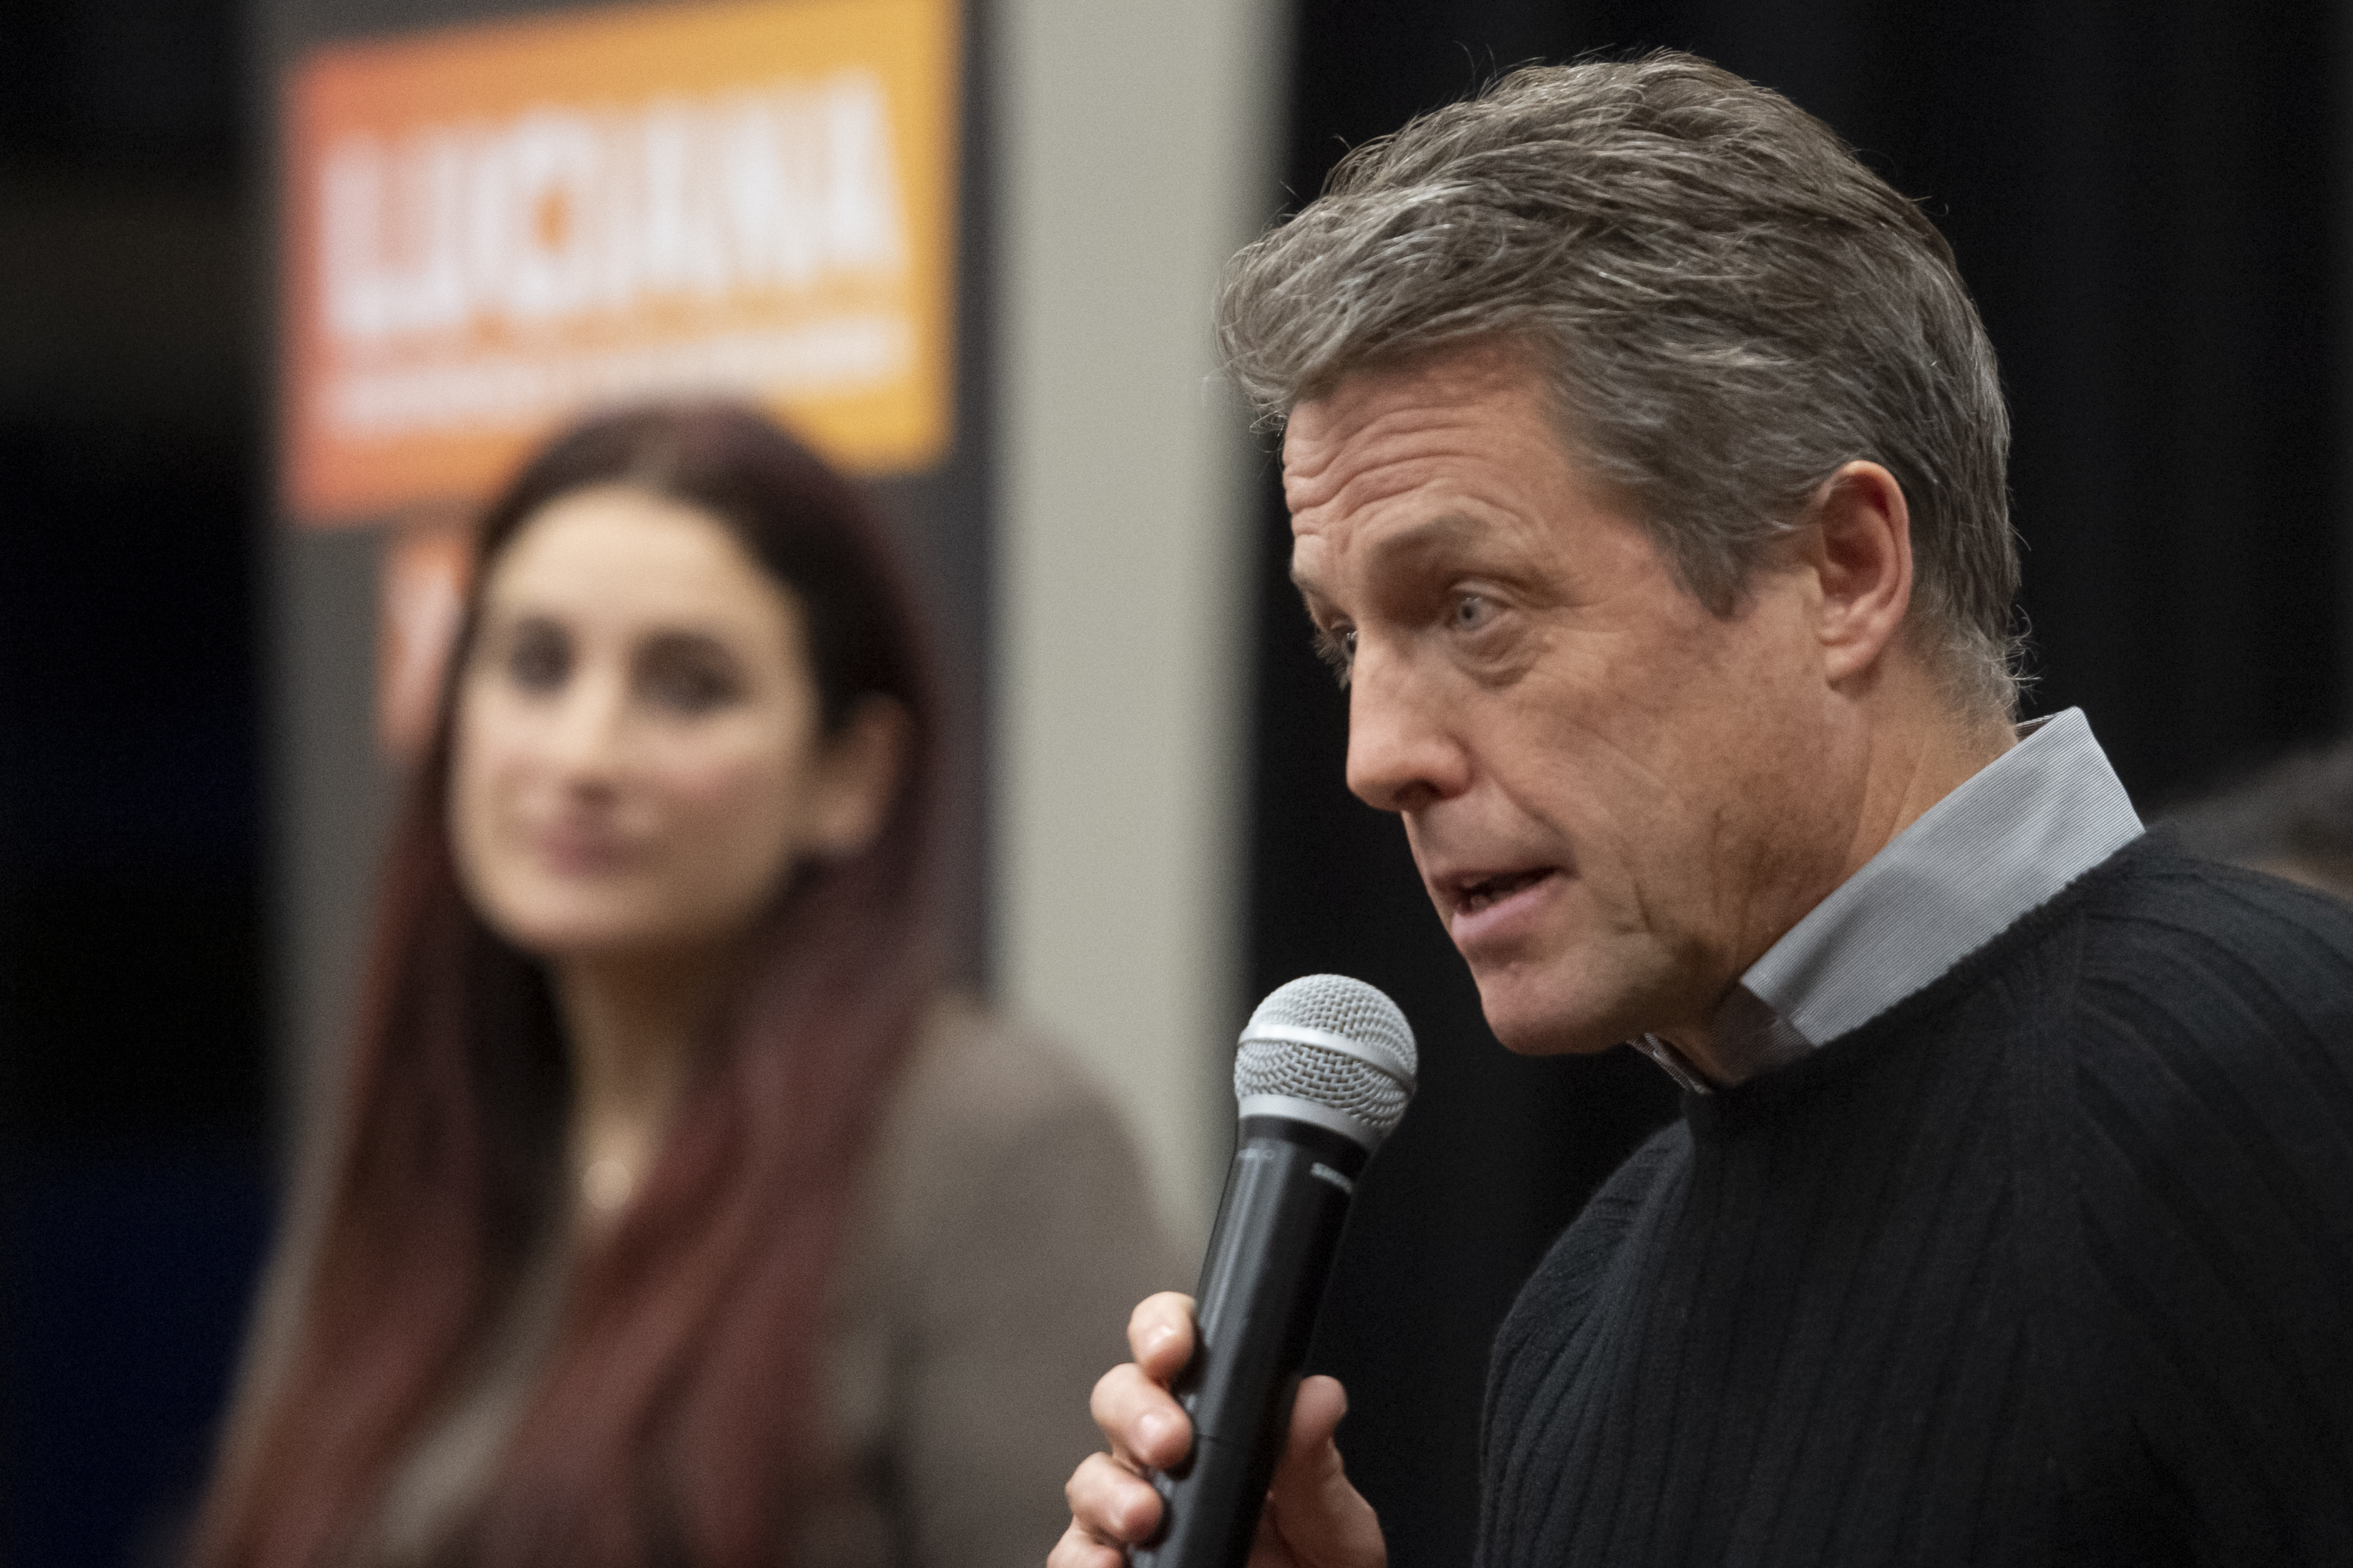 Liberal Democrat's candidate for Finchley and Golders Green, Luciana Berger listen to Hugh Grant speaking during a canvassing event in Finchley while on the General Election campaign trail.